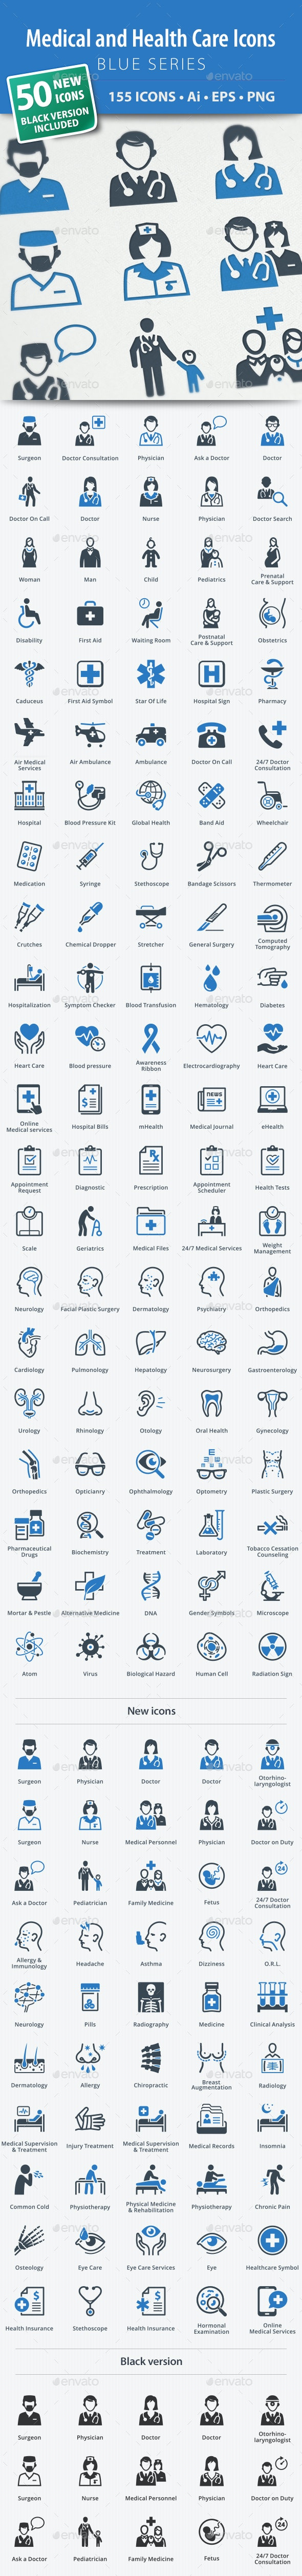 Medical & Health Care Icons - Blue Series - Web Icons